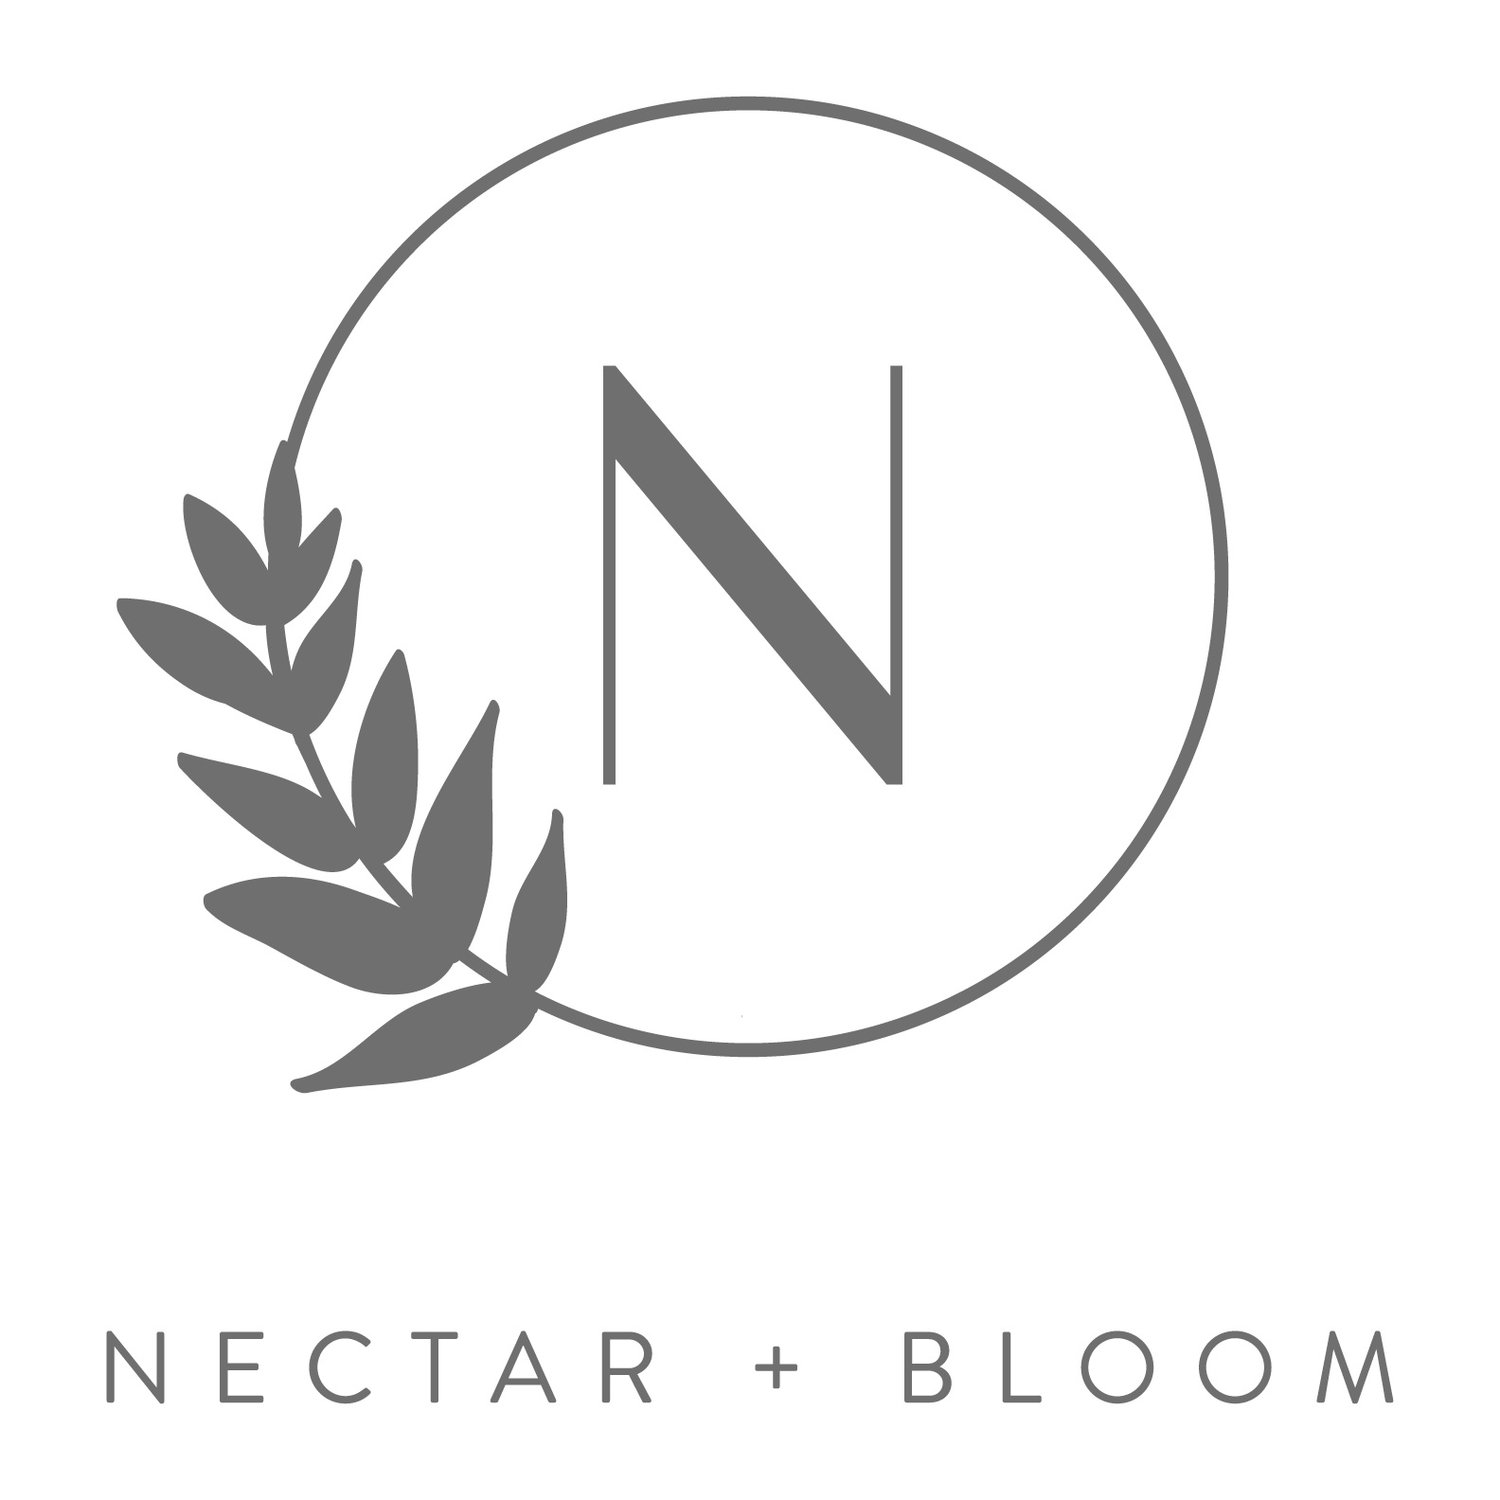 Nectar and Bloom